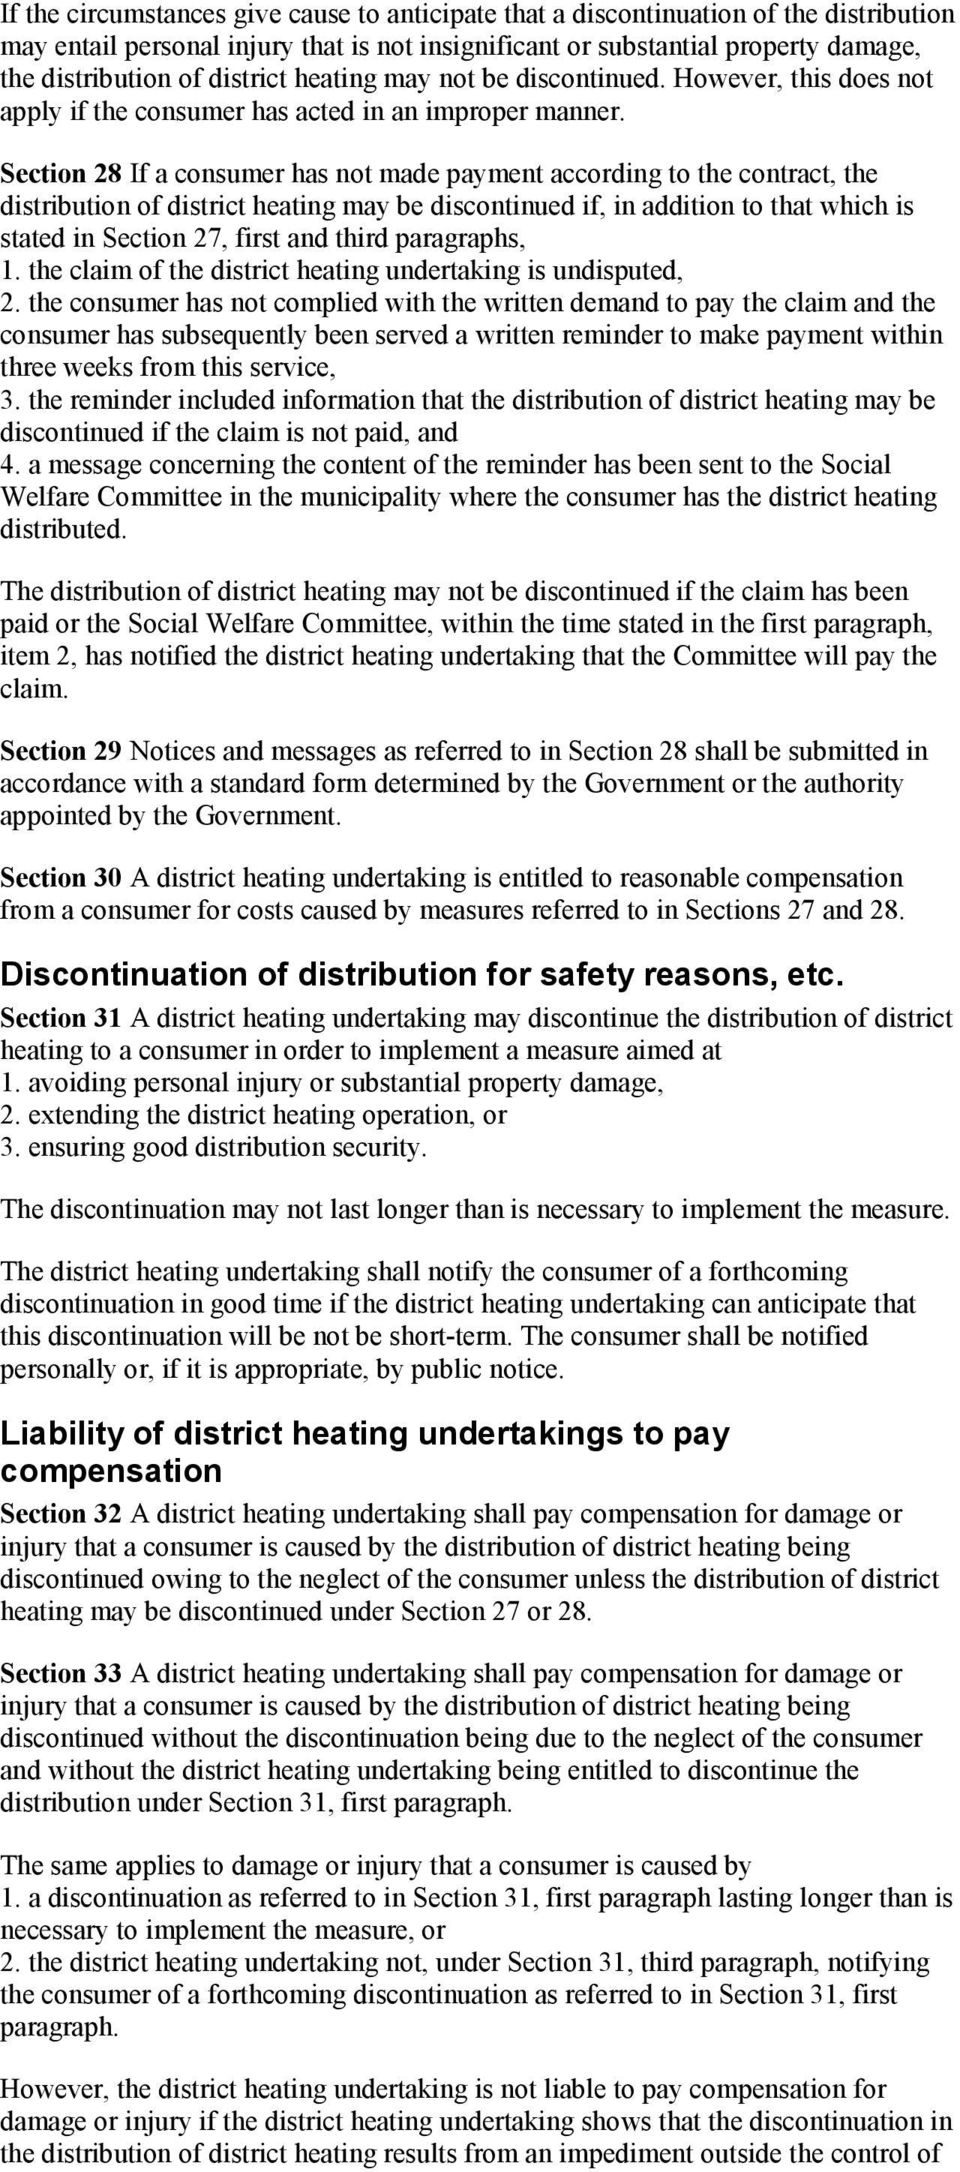 Section 28 If a consumer has not made payment according to the contract, the distribution of district heating may be discontinued if, in addition to that which is stated in Section 27, first and